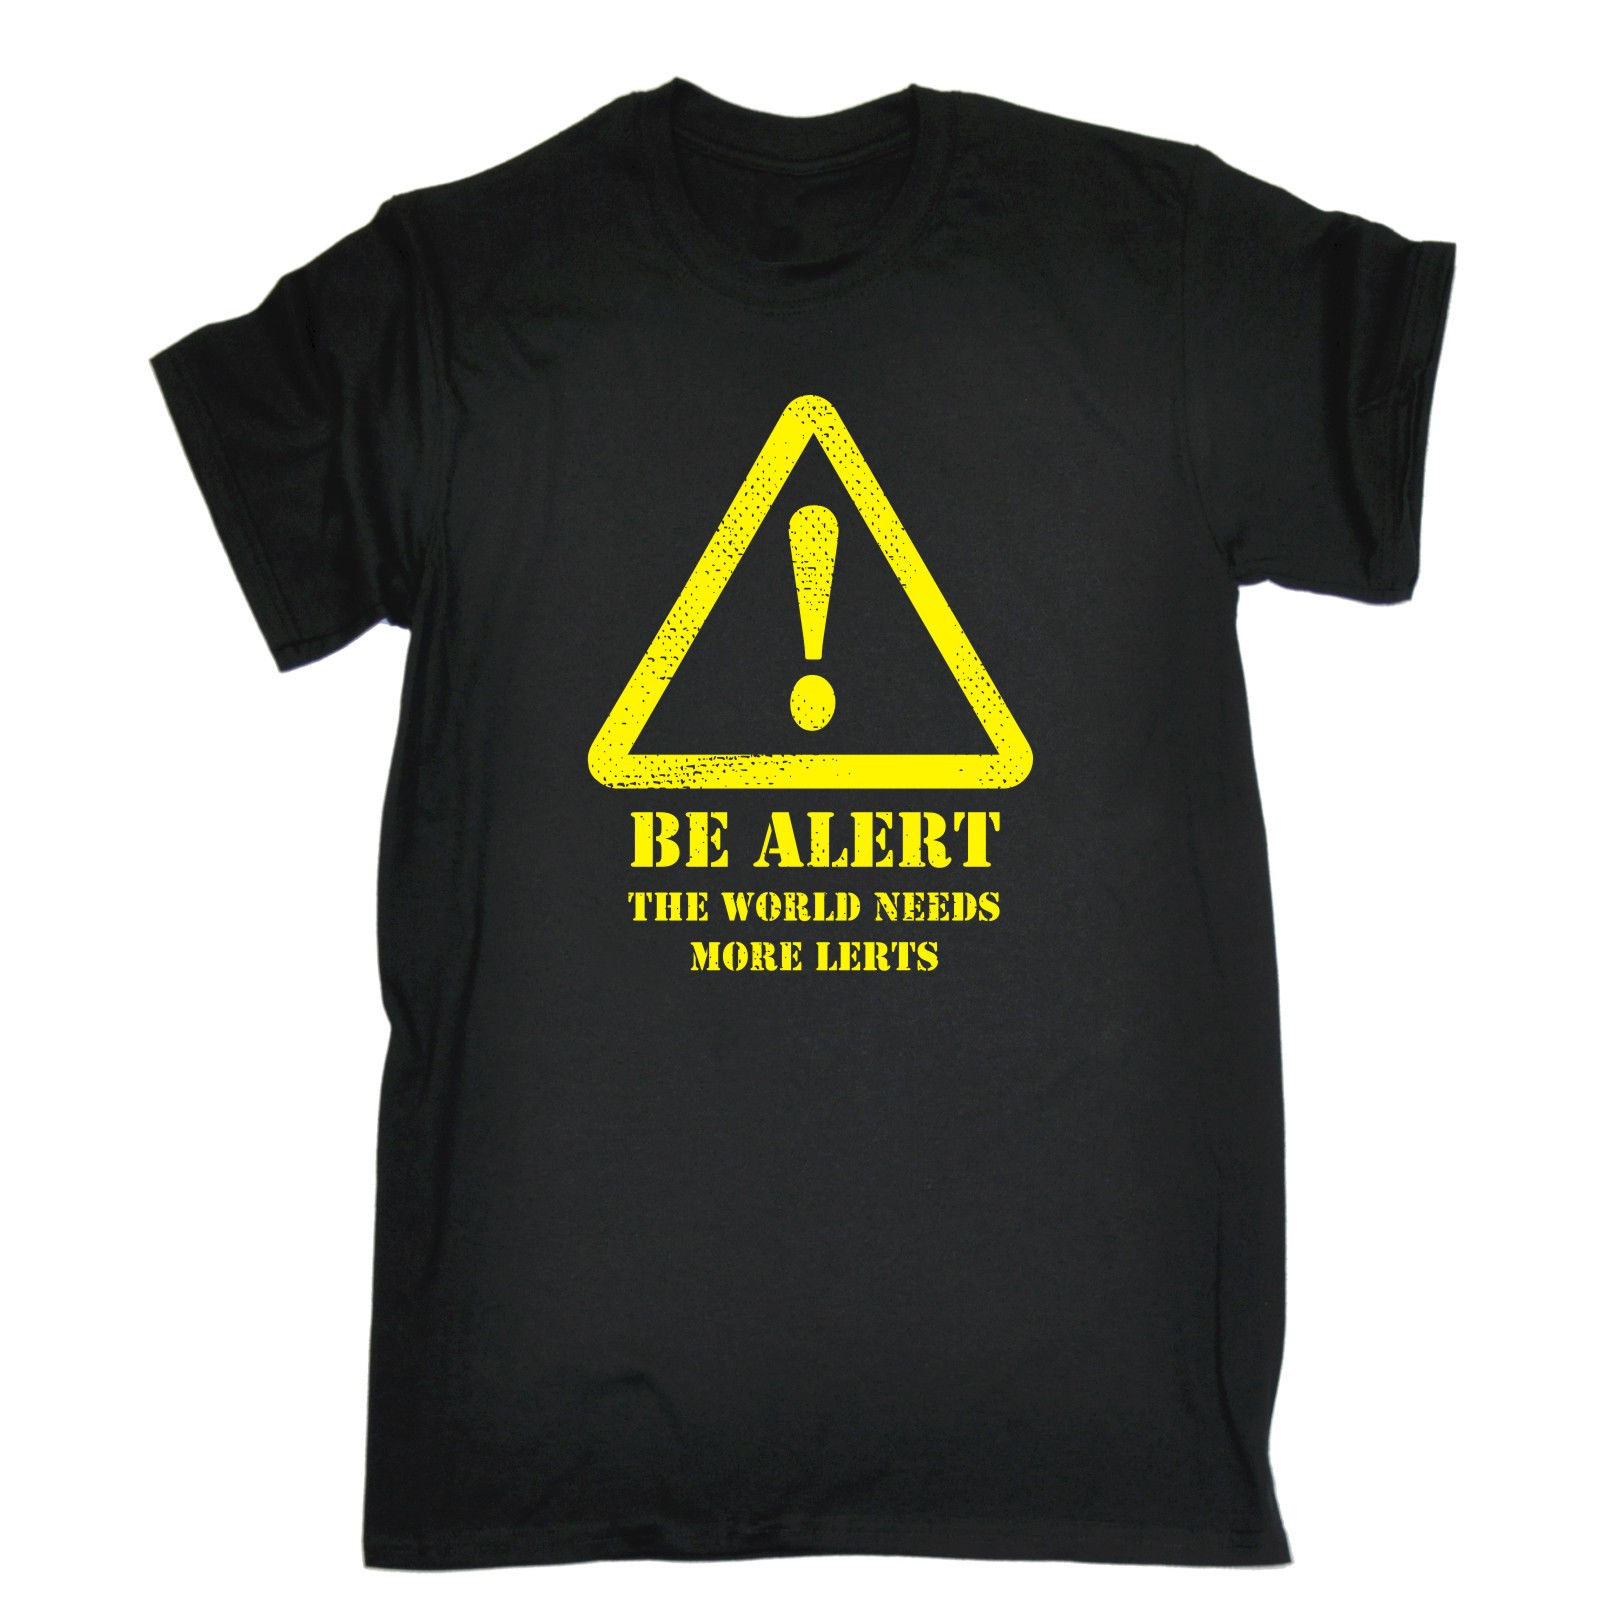 BE ALERT THE WORLD NEEDS MORE LERTS T-SHIRT Tee Joke Humour Funny Birthday Gift Sleeve Tee Shirt Homme T Shirt Summer image